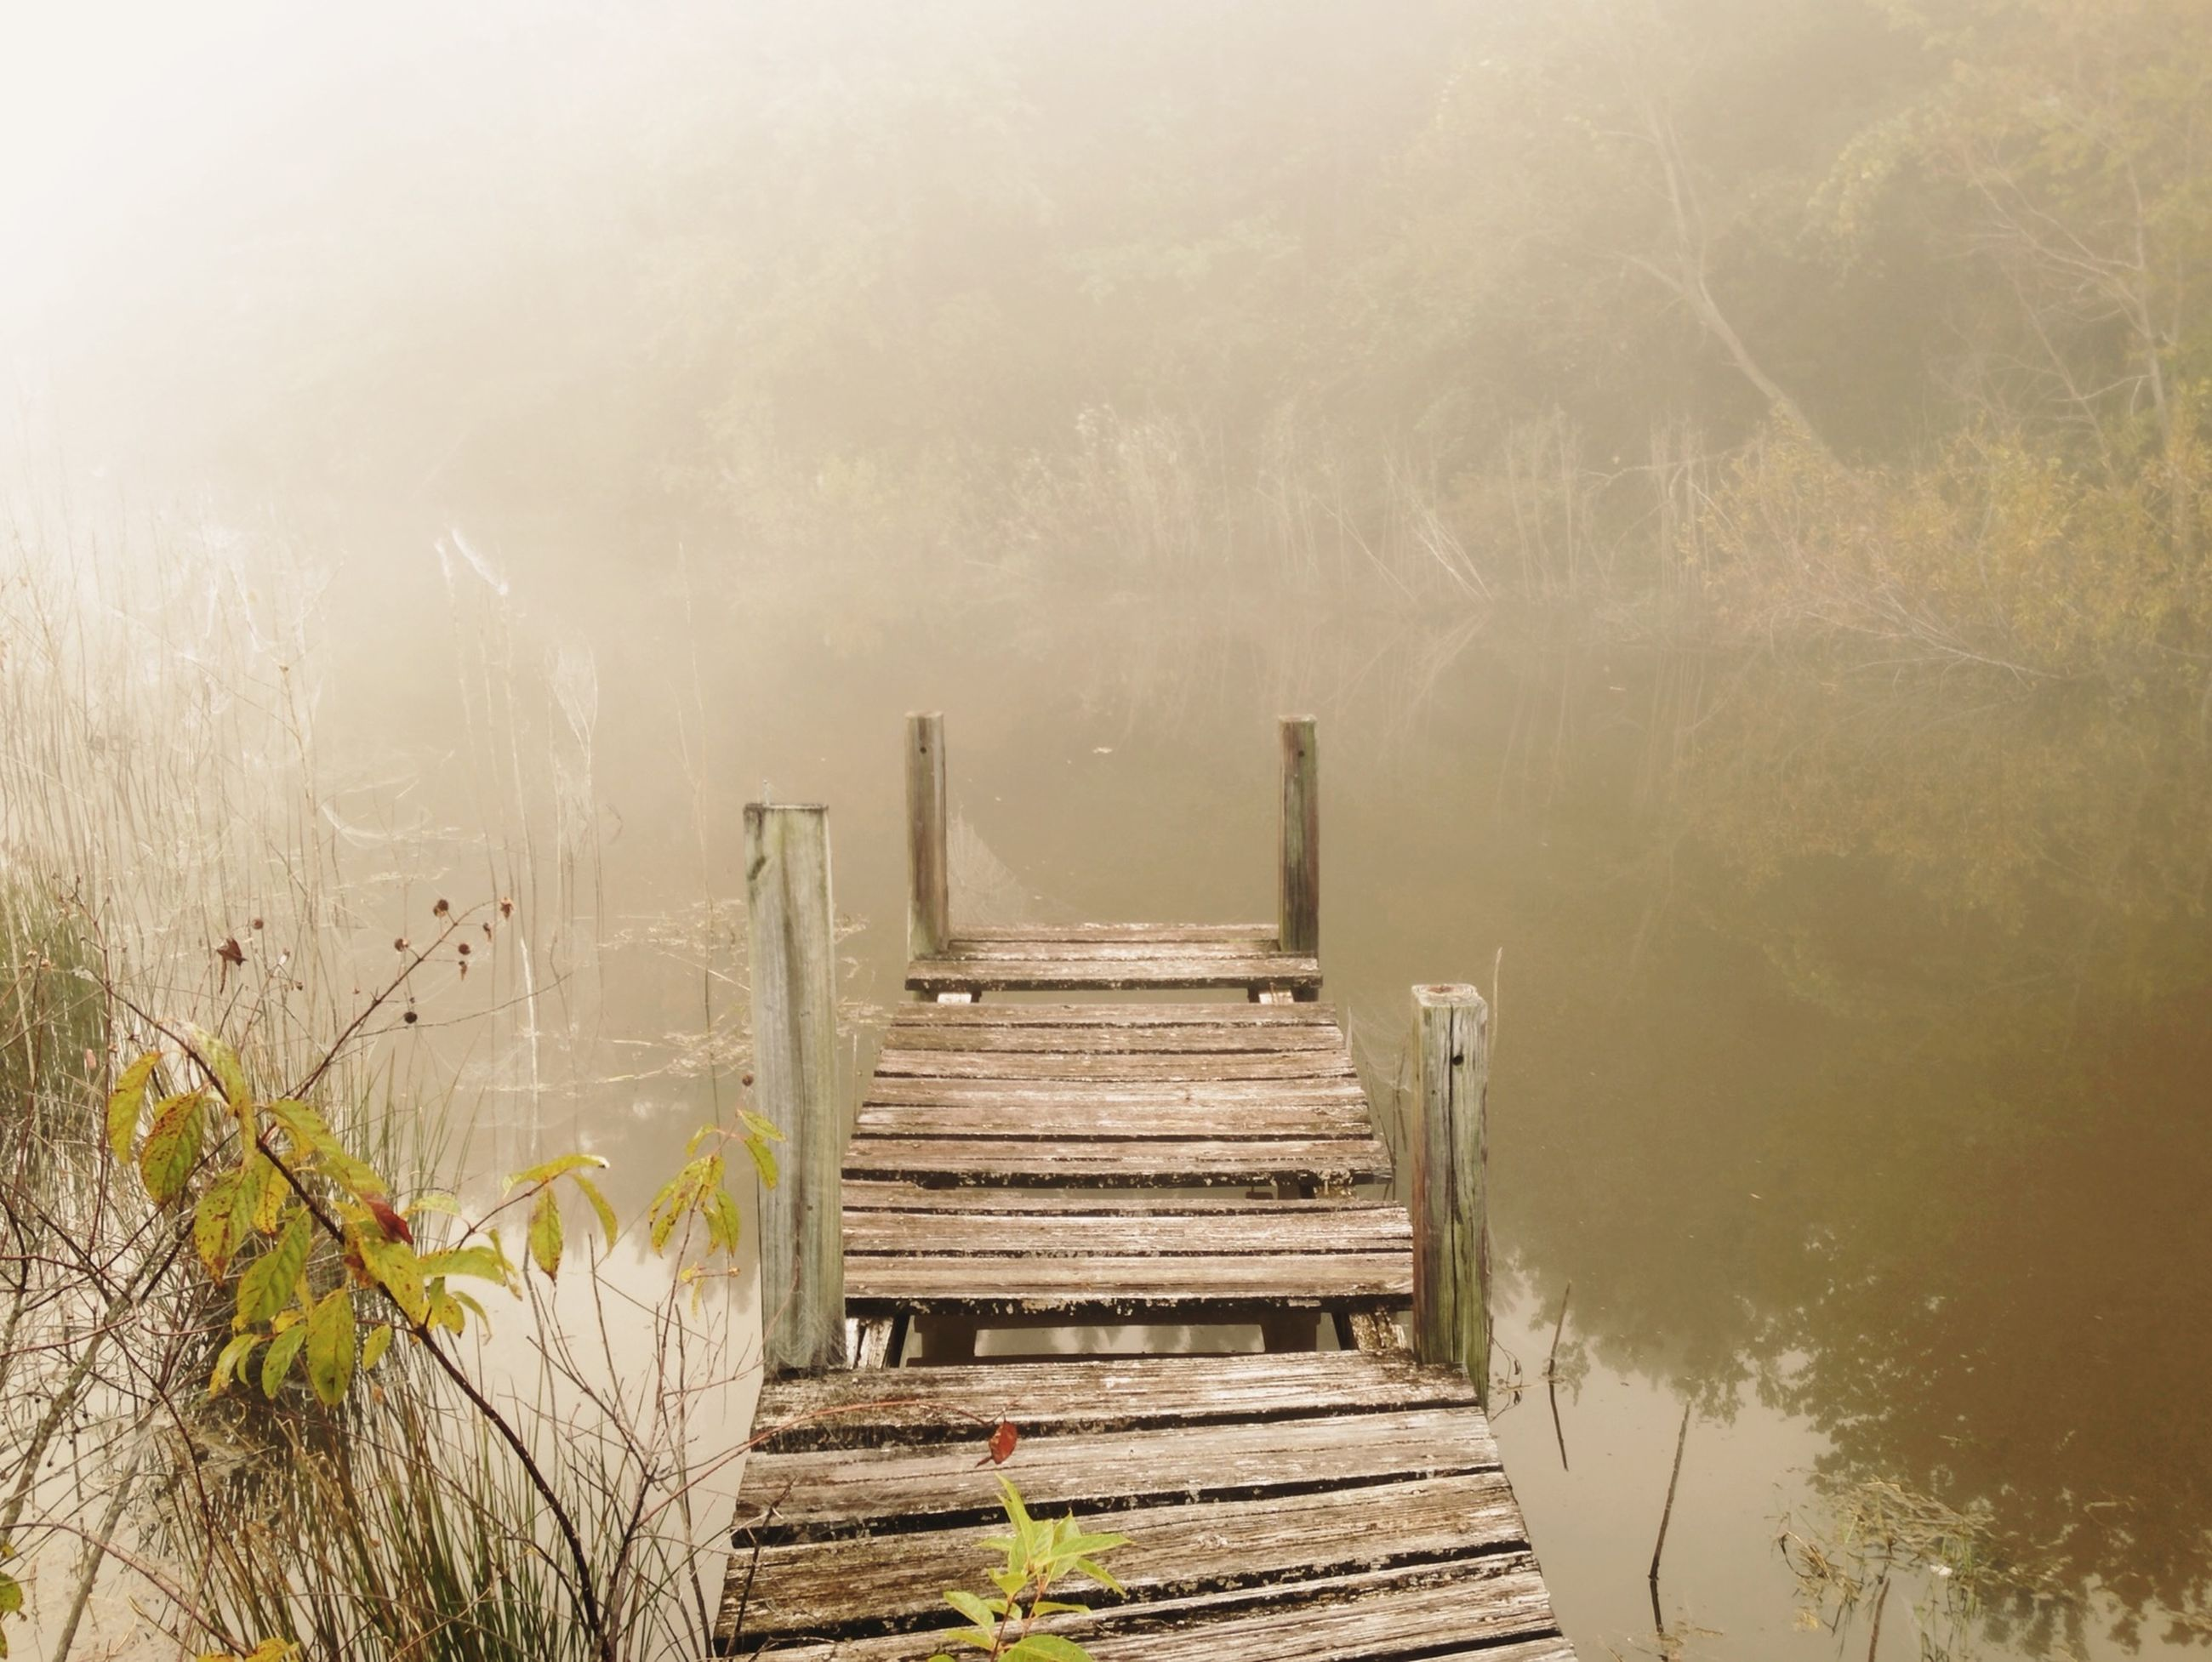 water, wood - material, pier, tranquility, lake, tranquil scene, jetty, nature, scenics, beauty in nature, the way forward, wooden, boardwalk, wood, sea, sky, idyllic, day, fog, outdoors